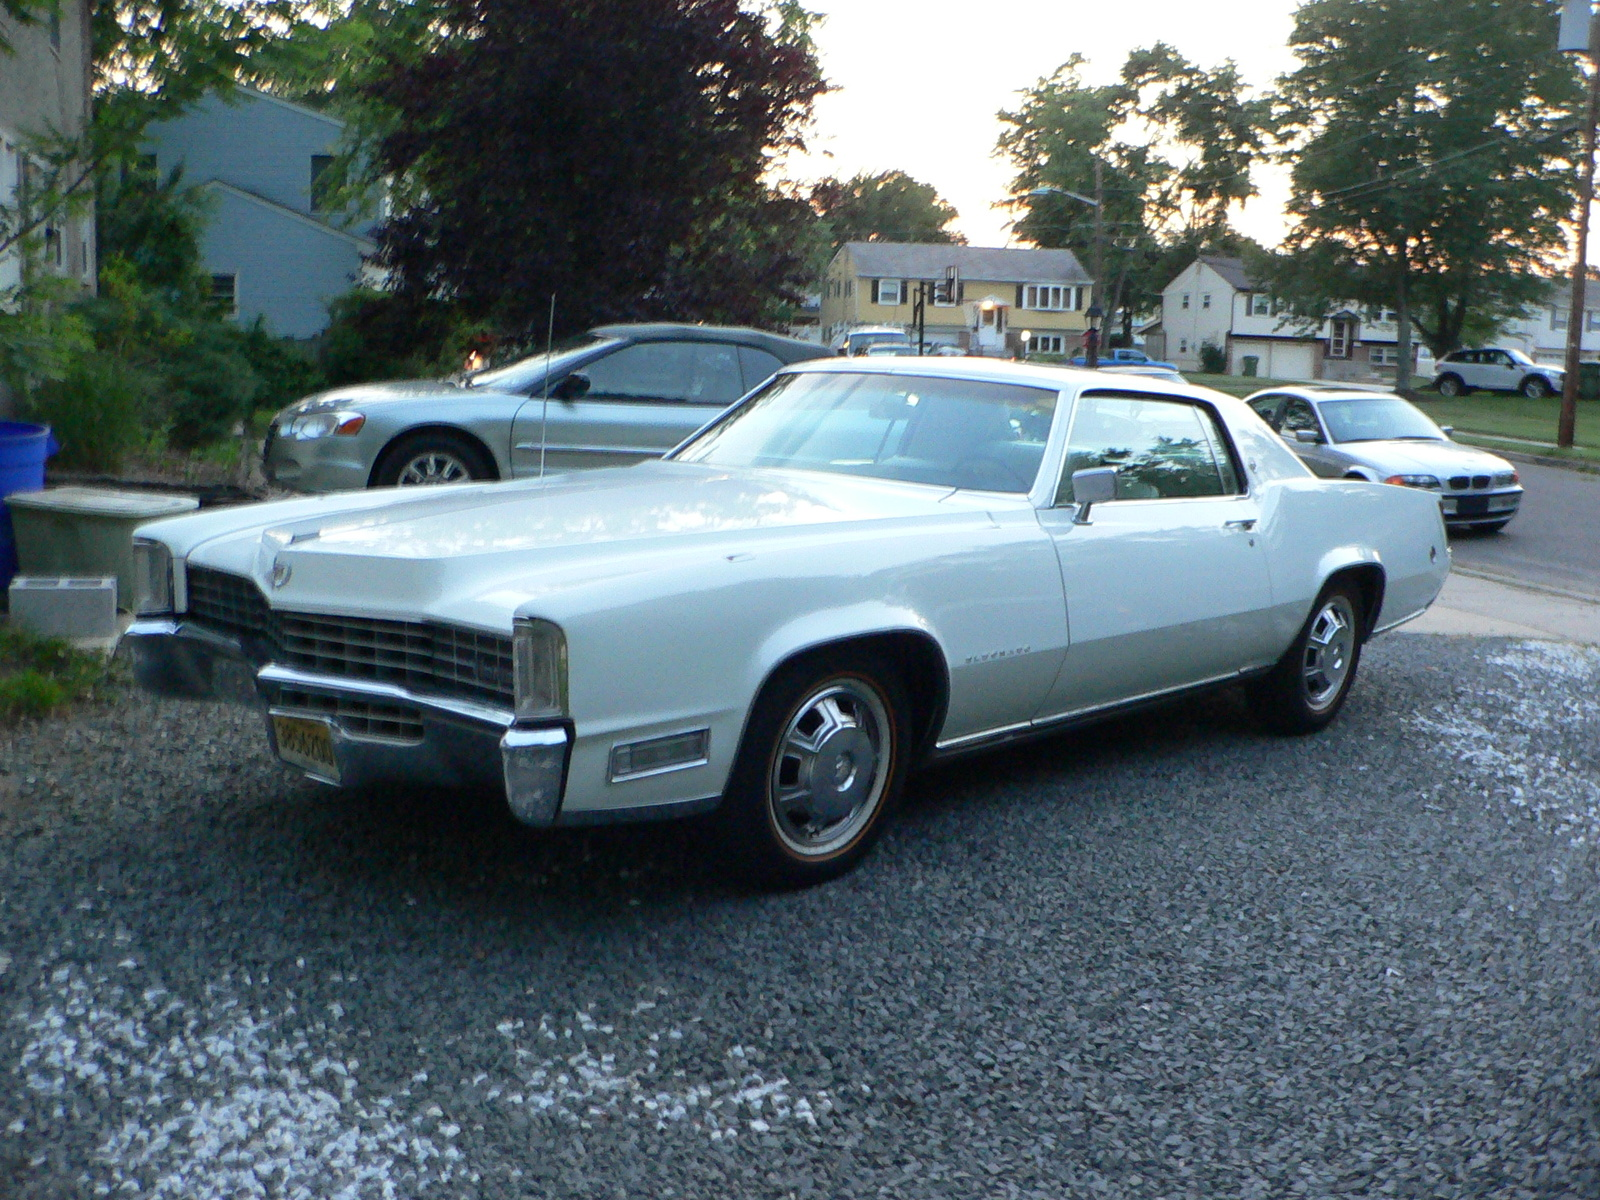 Used Volvo For Sale Cargurus >> 1968 Cadillac Eldorado - Overview - CarGurus